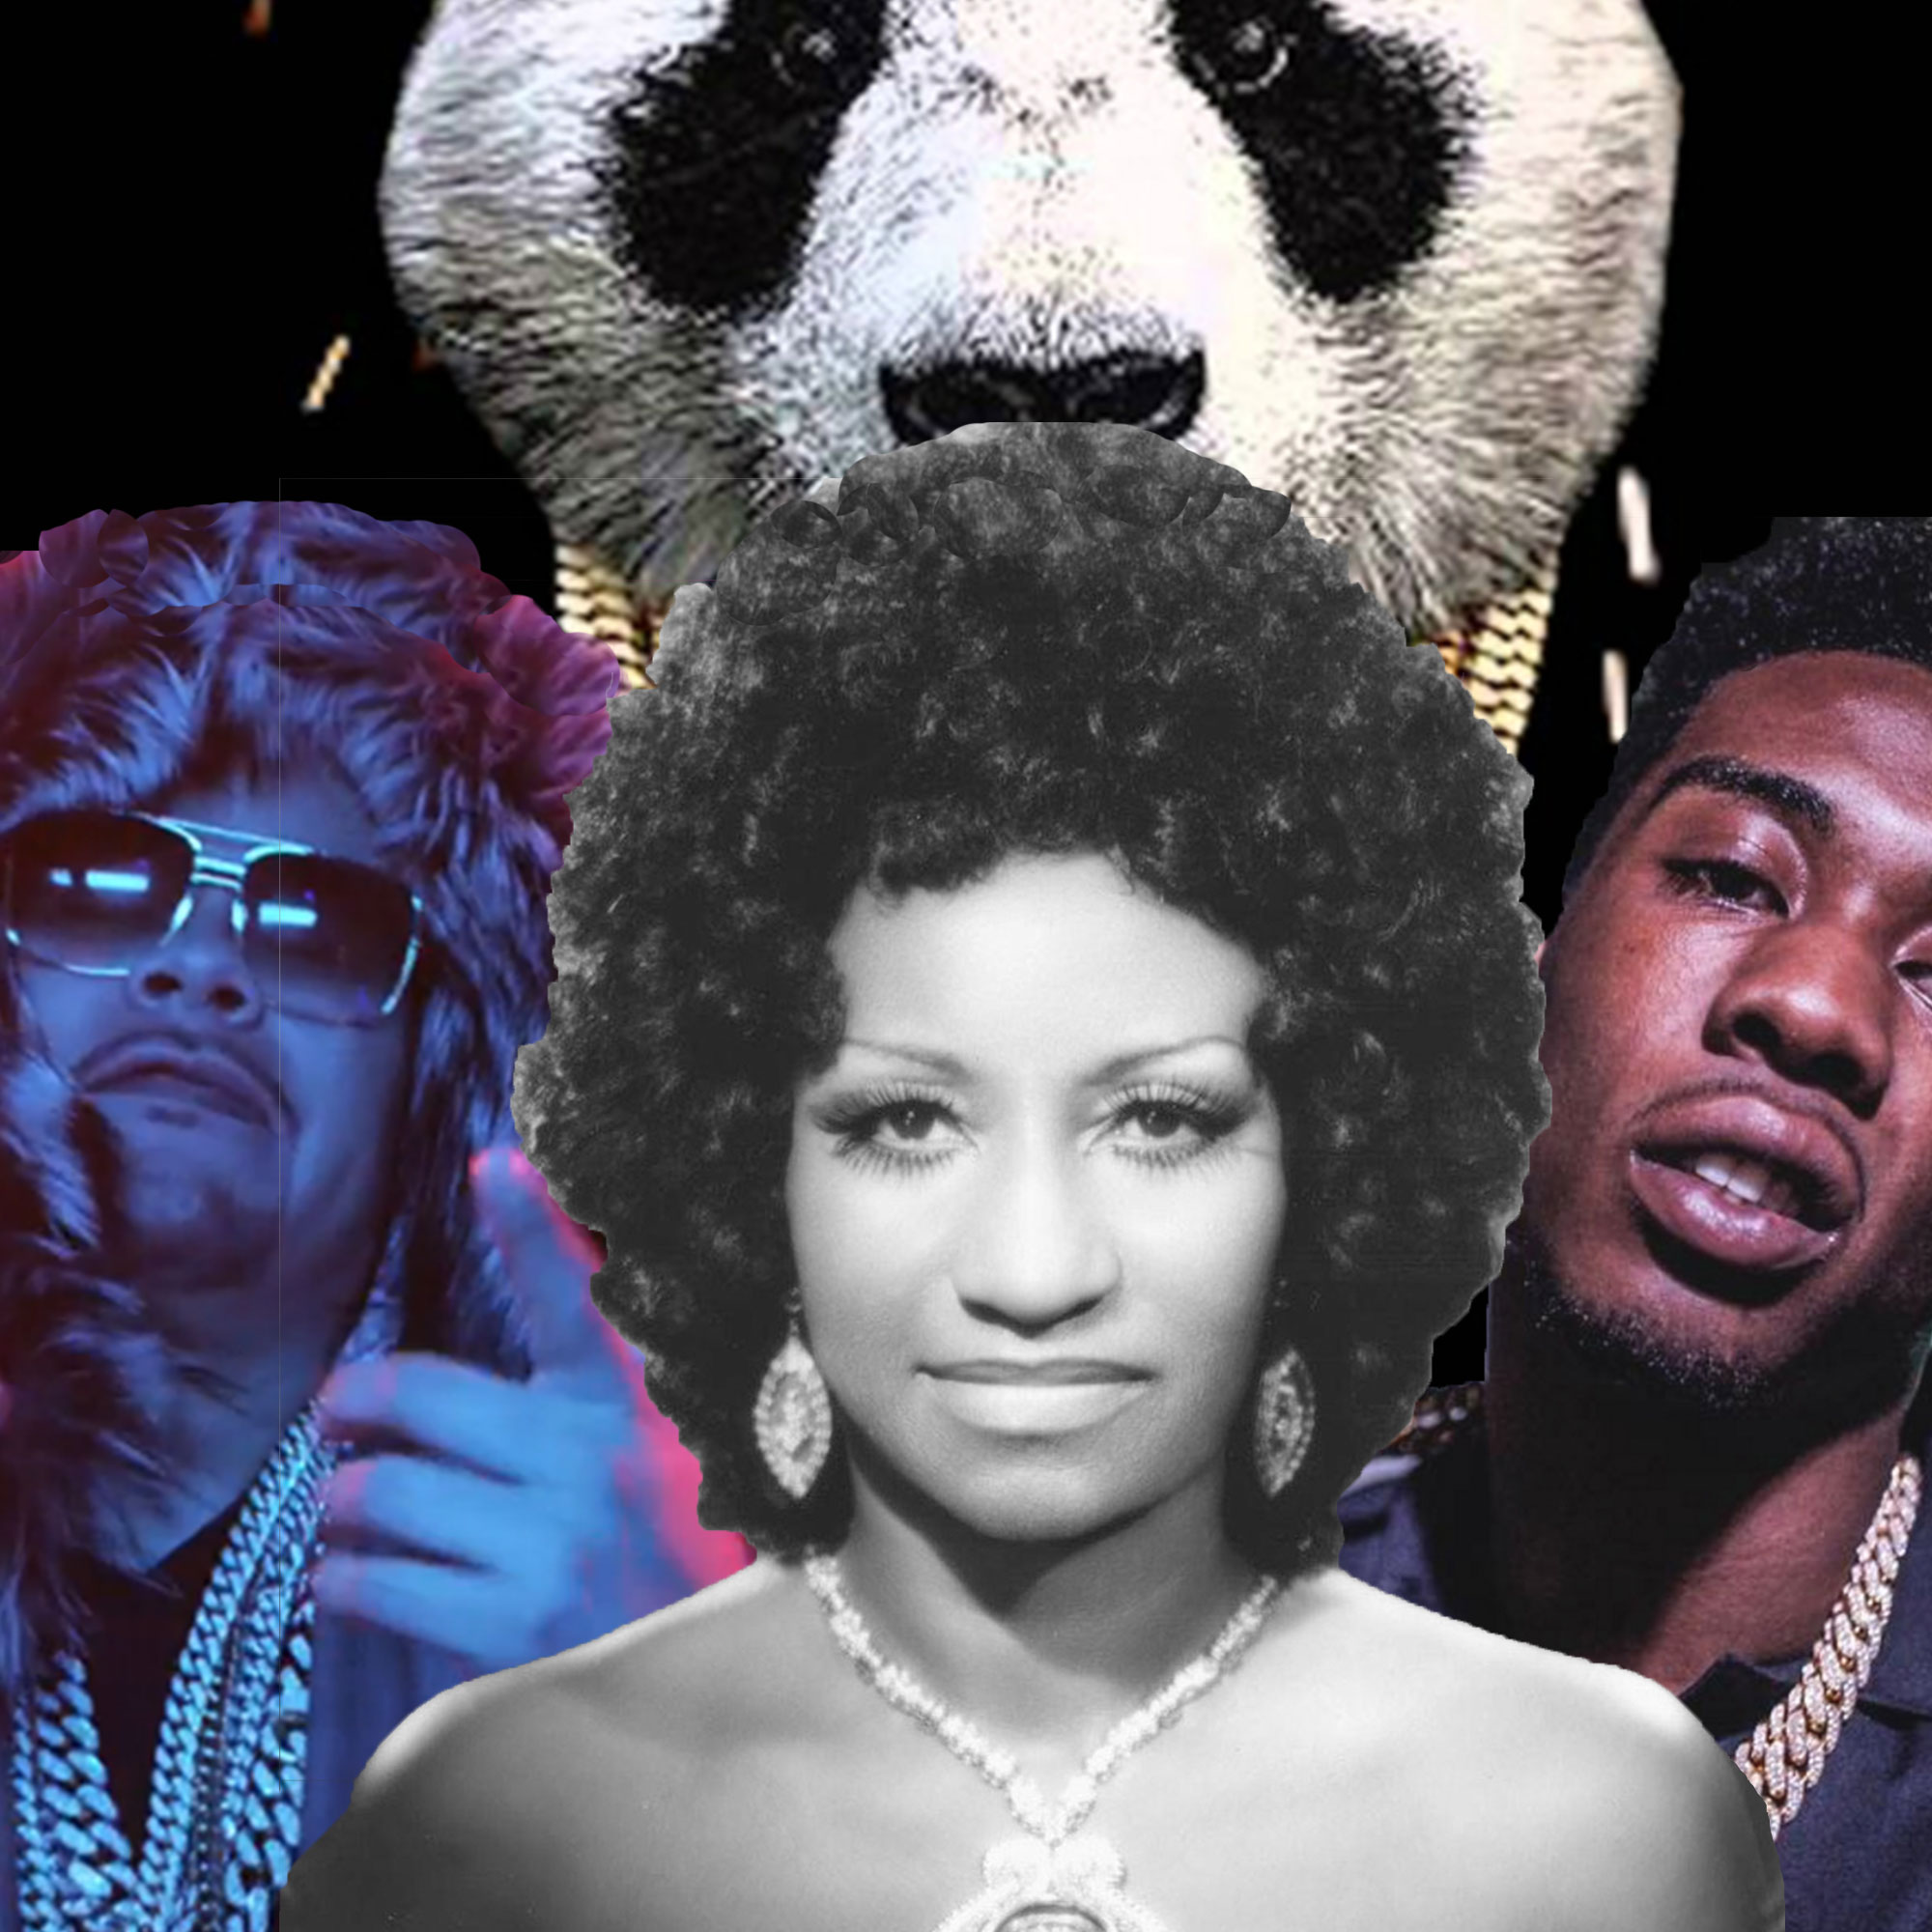 GuantanaPanda Way Up (Desiigner vs Fat Joe & Remy Ma vs Celia Cruz)